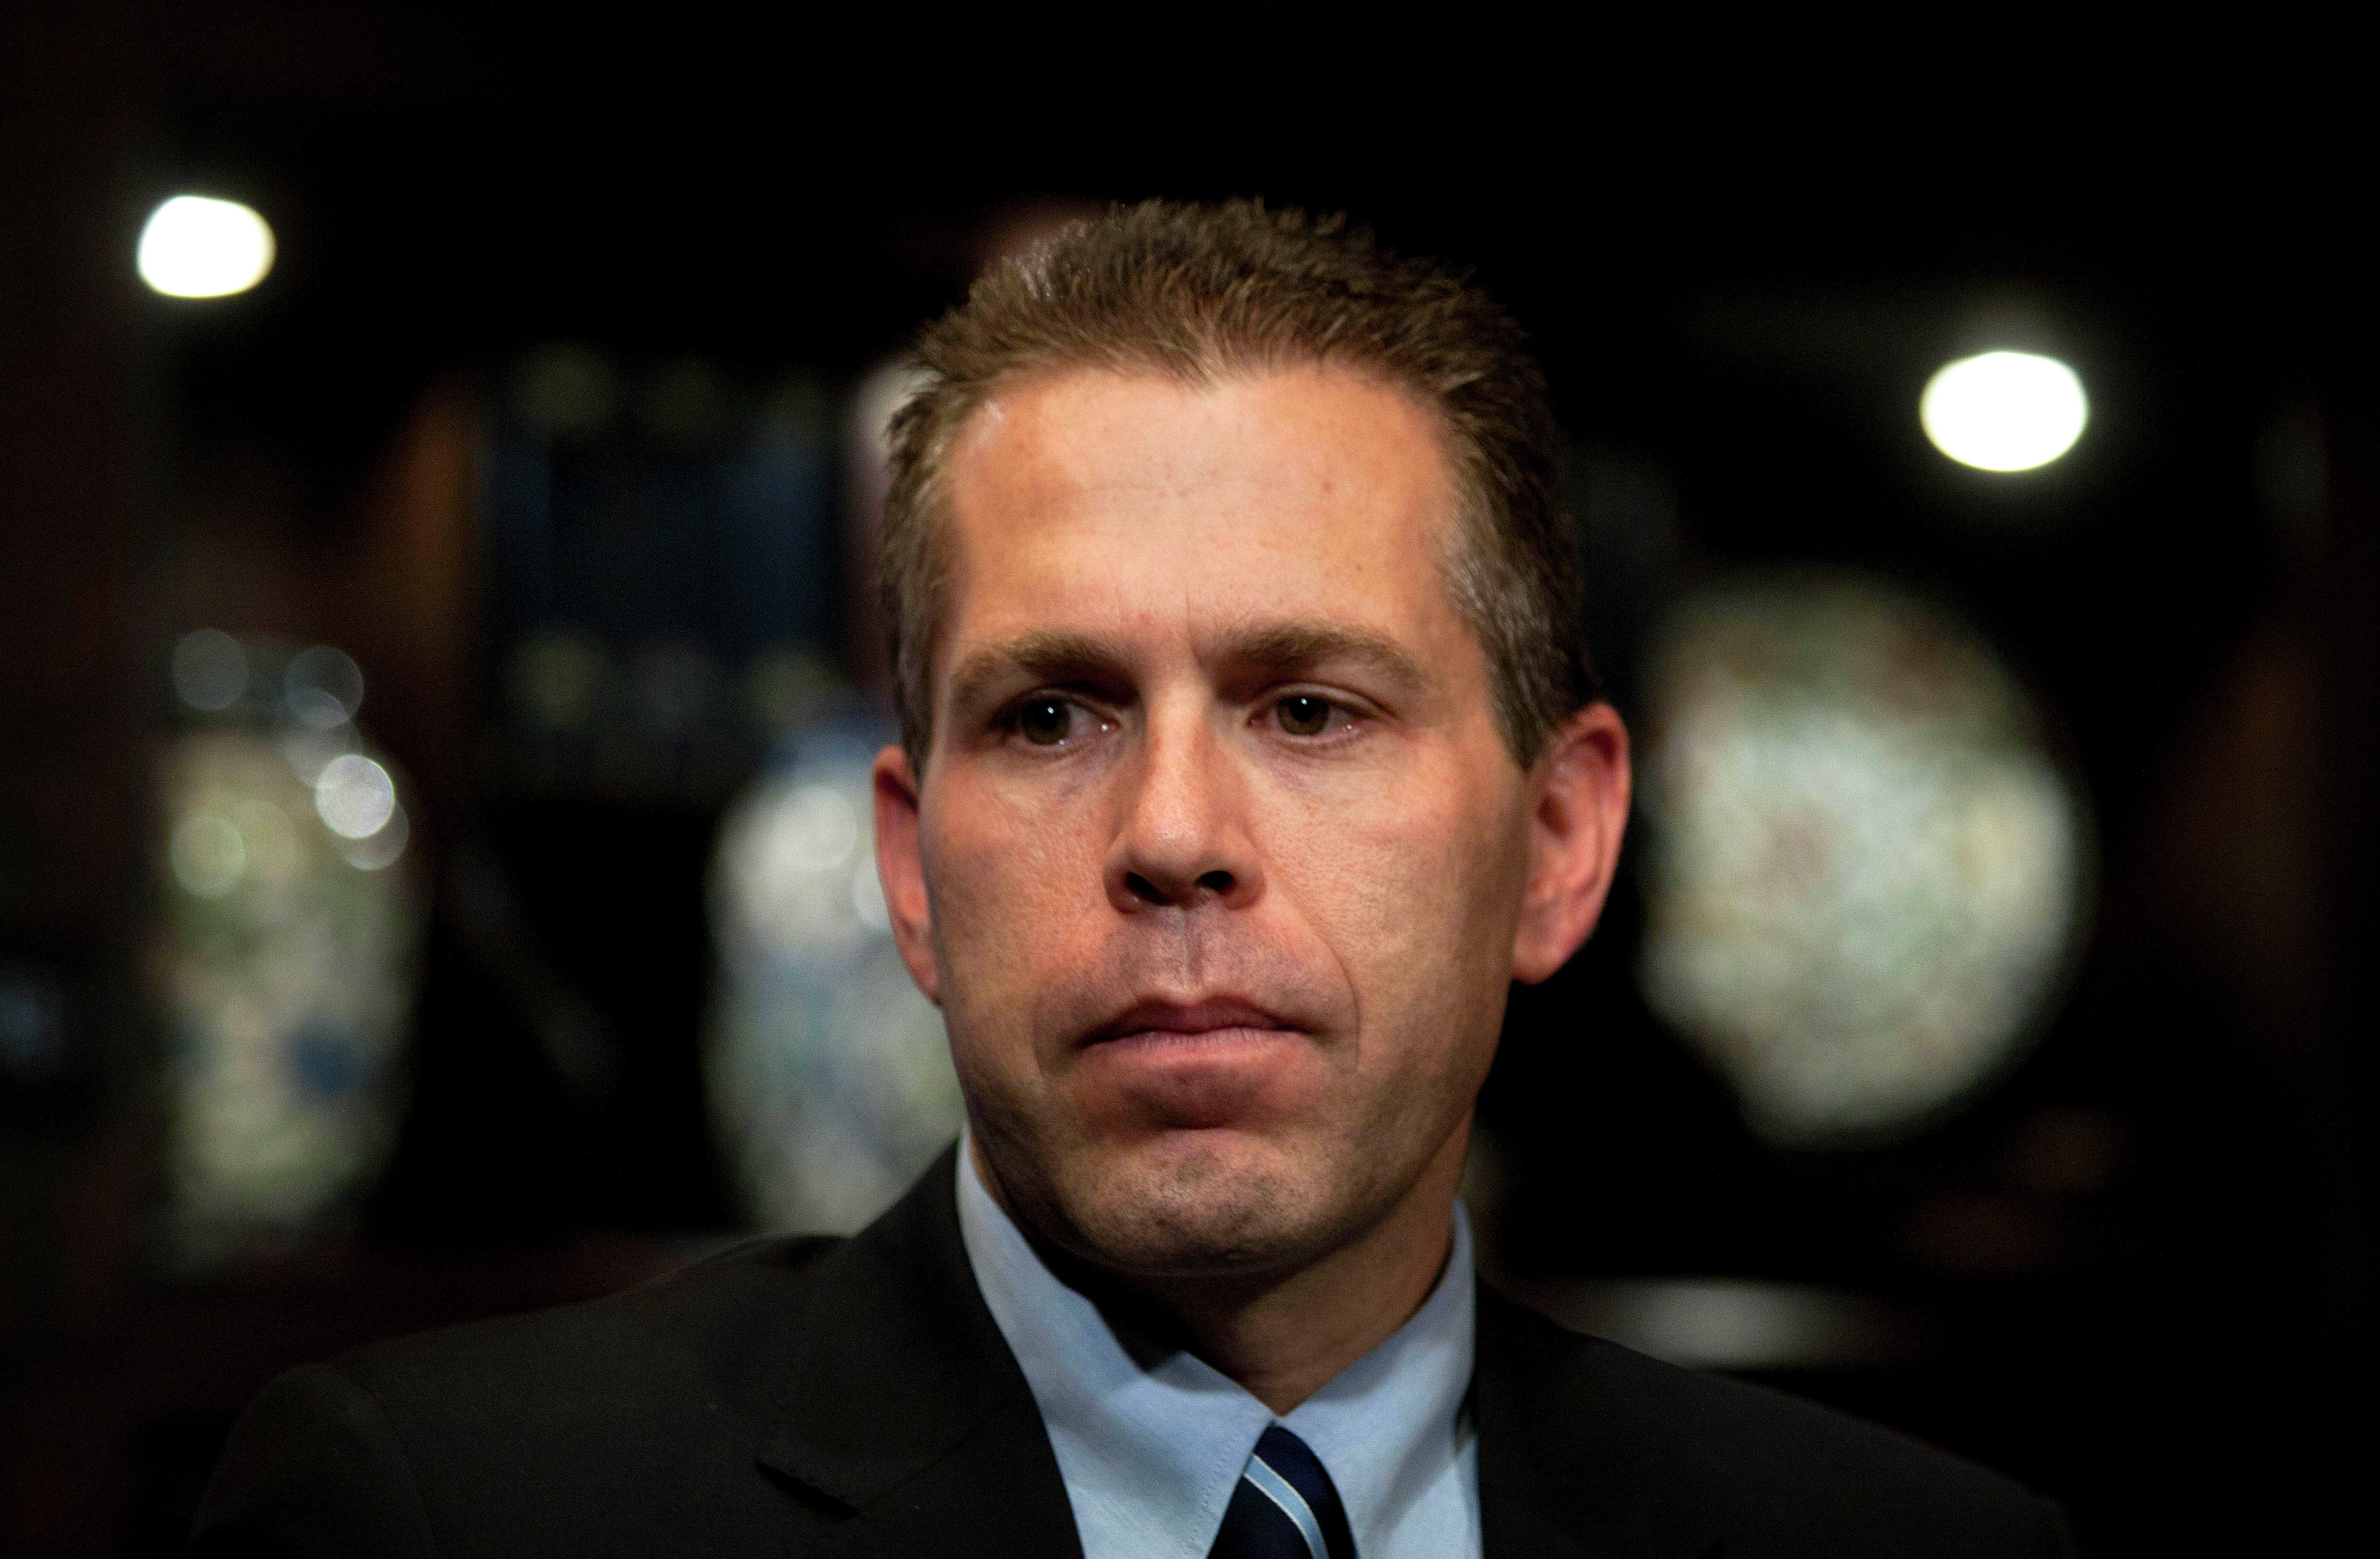 Israeli Cabinet minister Gilad Erdan is seen during an interview with The Associated Press in Jerusalem, Monday, Sept. 12, 2011